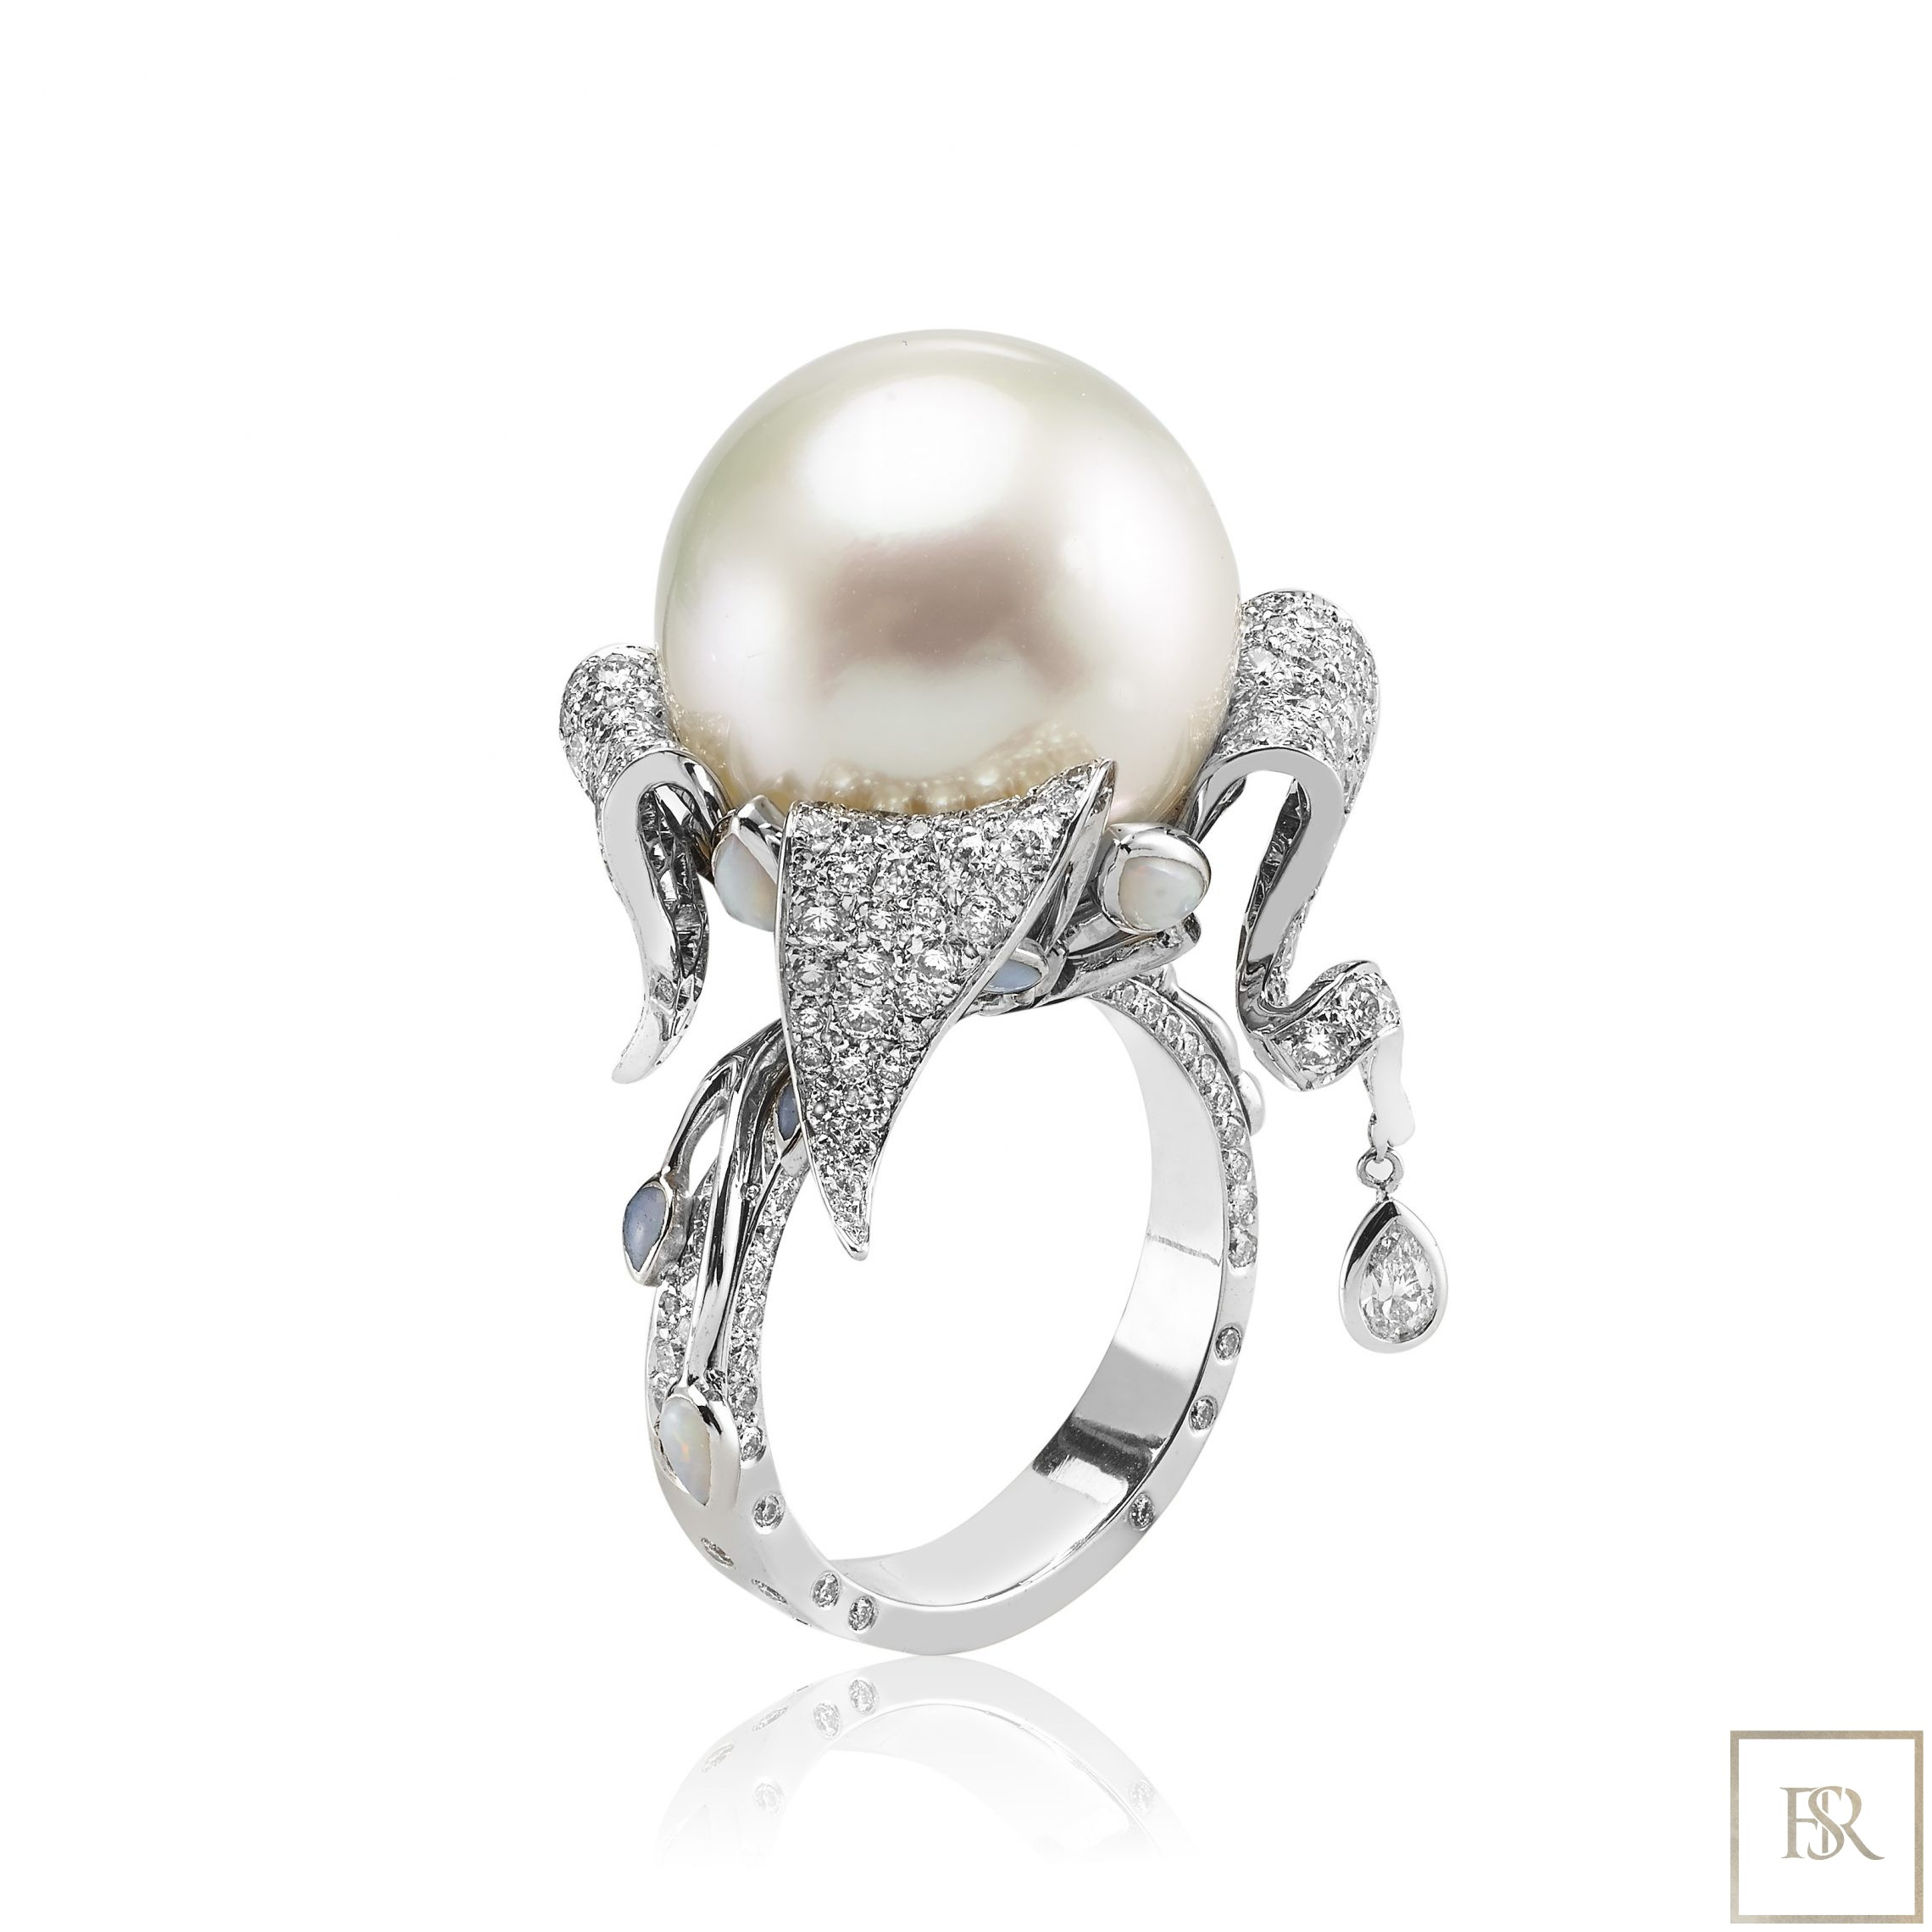 Ring ZIBELINE - SANDRINE TESSIER for sale For Super Rich